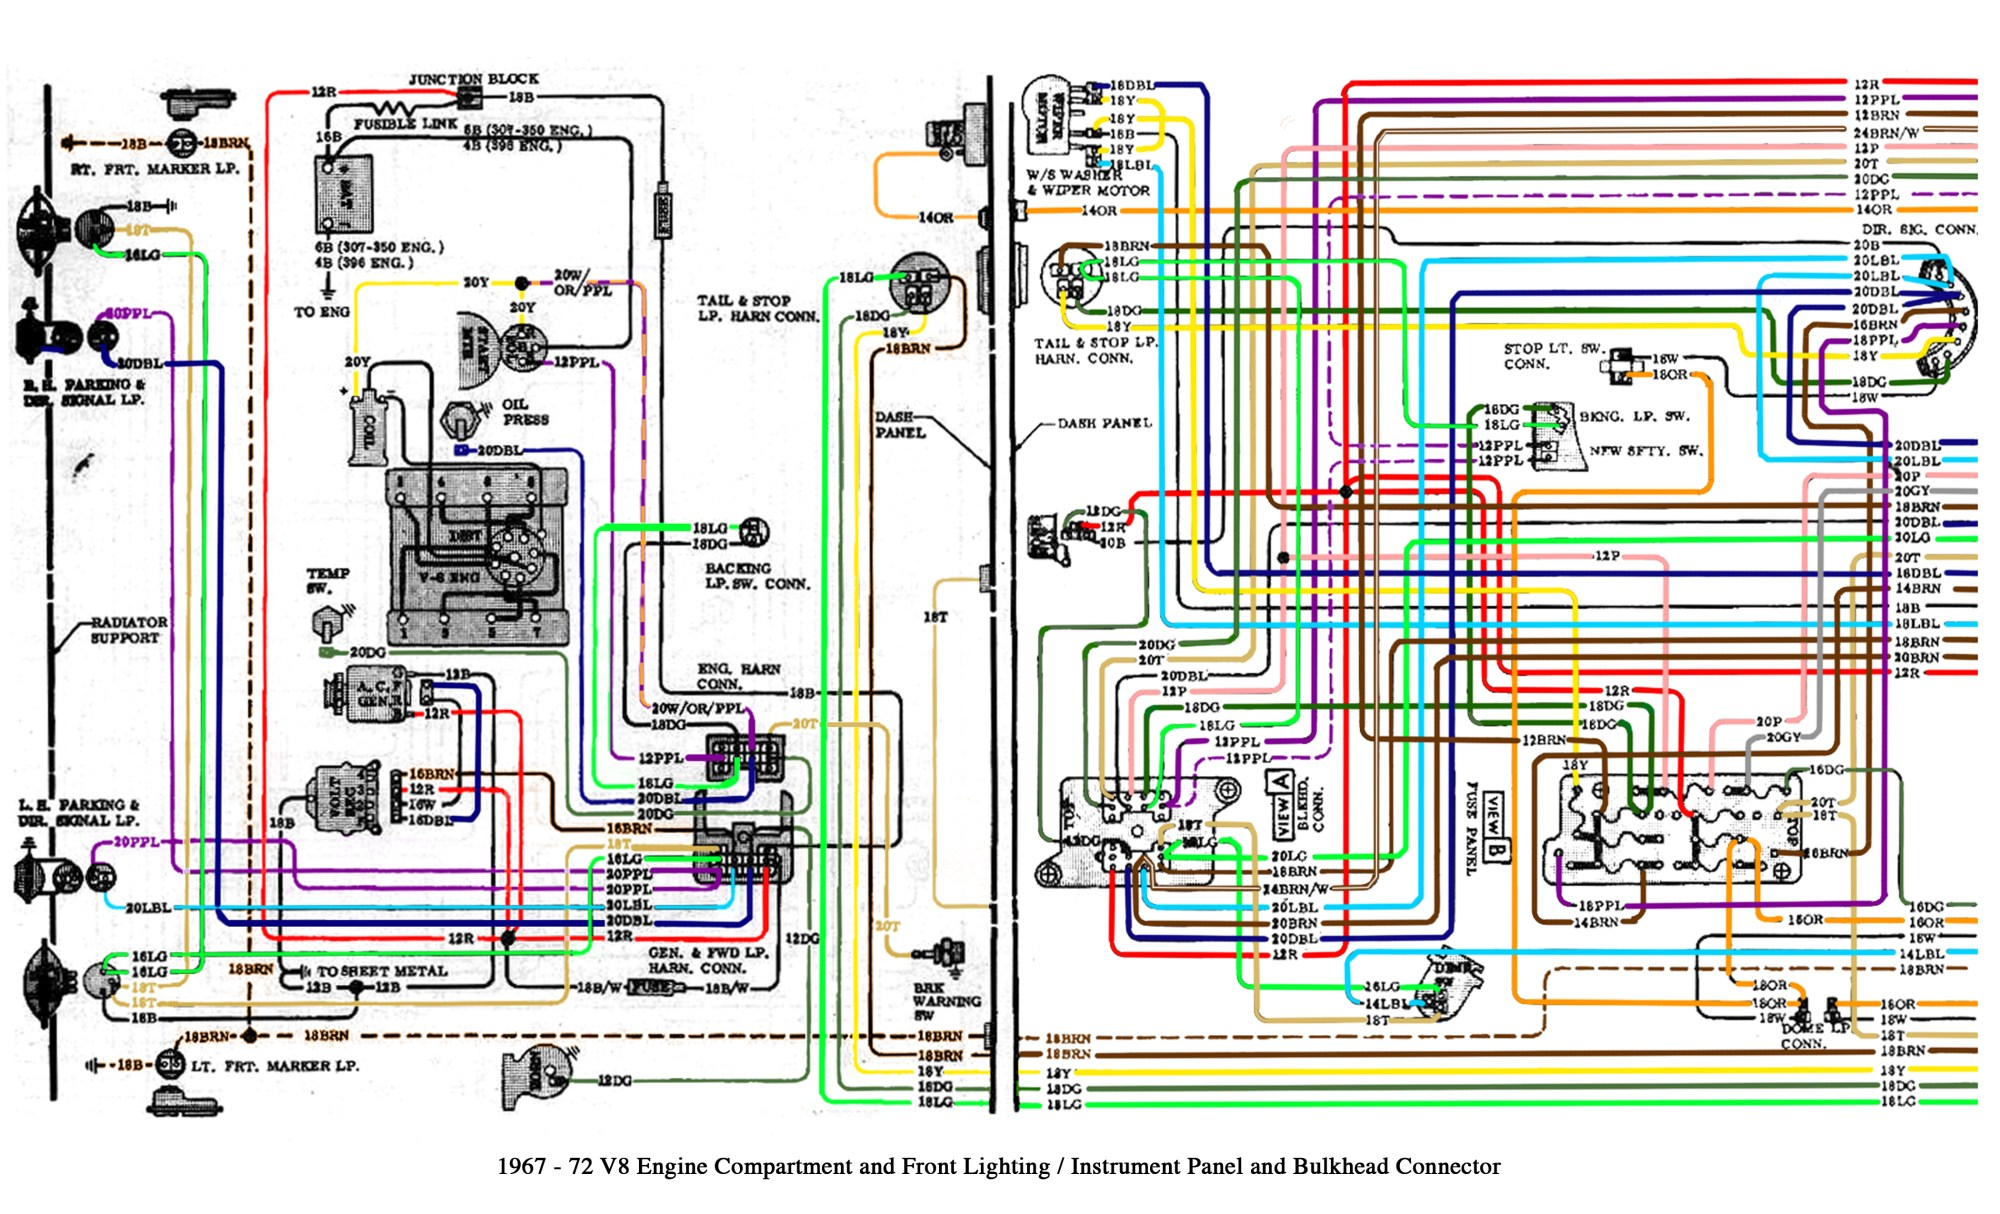 hight resolution of color wiring diagram finished the 1947 present chevrolet gmc s10 wiring harness diagram 1970 chevy blazer wiring diagram